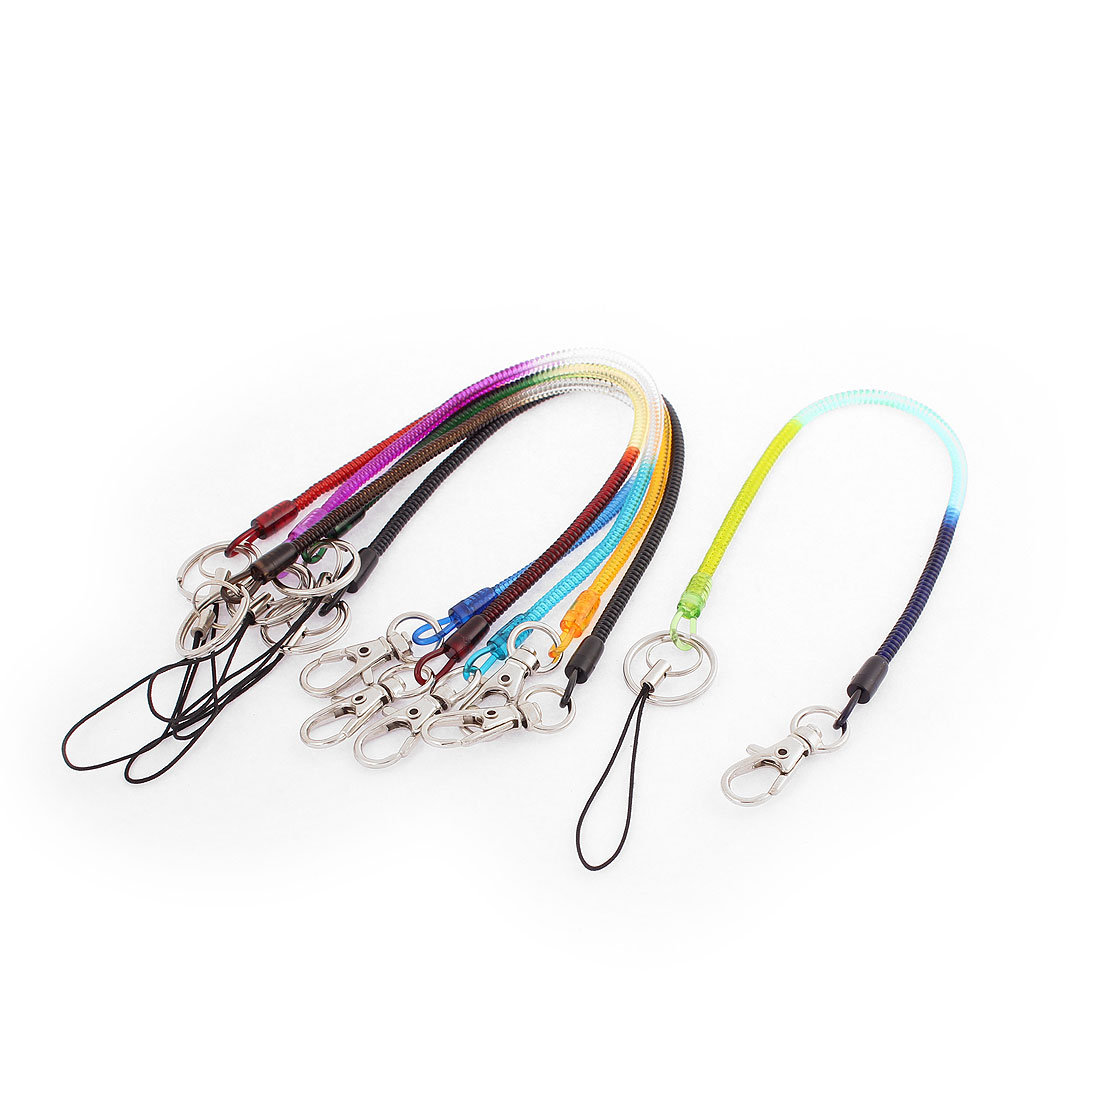 30cm Long Multicolor Plastic Lobster Claw Clasp Key Chain Strap Flexible Spring Sprial Coil Cord 6 Pcs